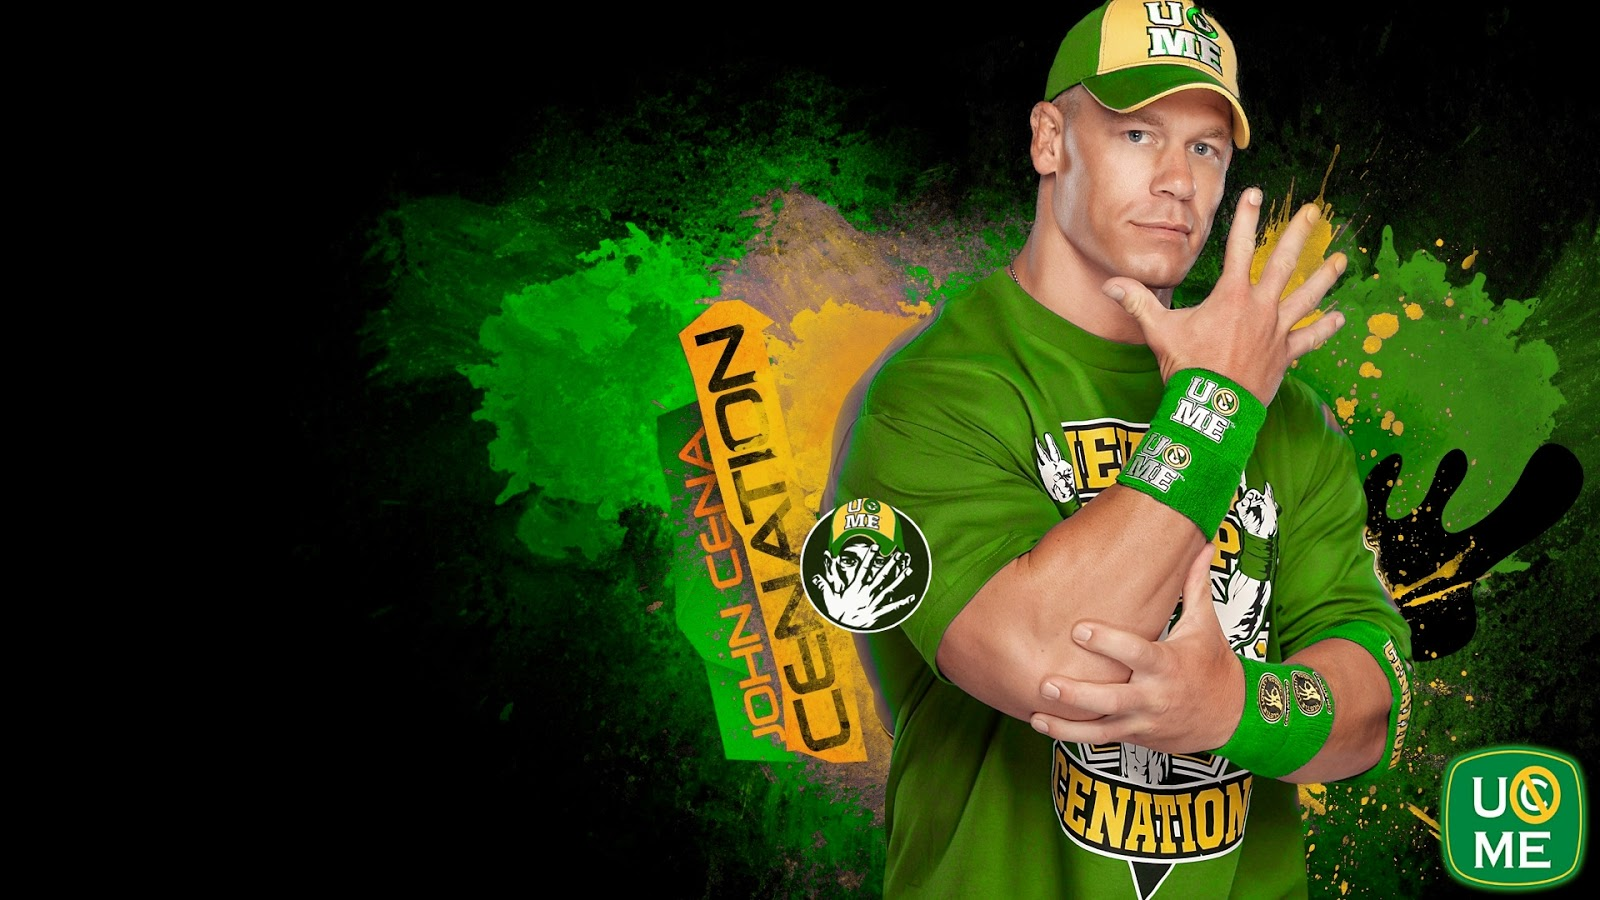 John Cena Green Wallpapers 2013 Wrestling and Wrestlers 1600x900